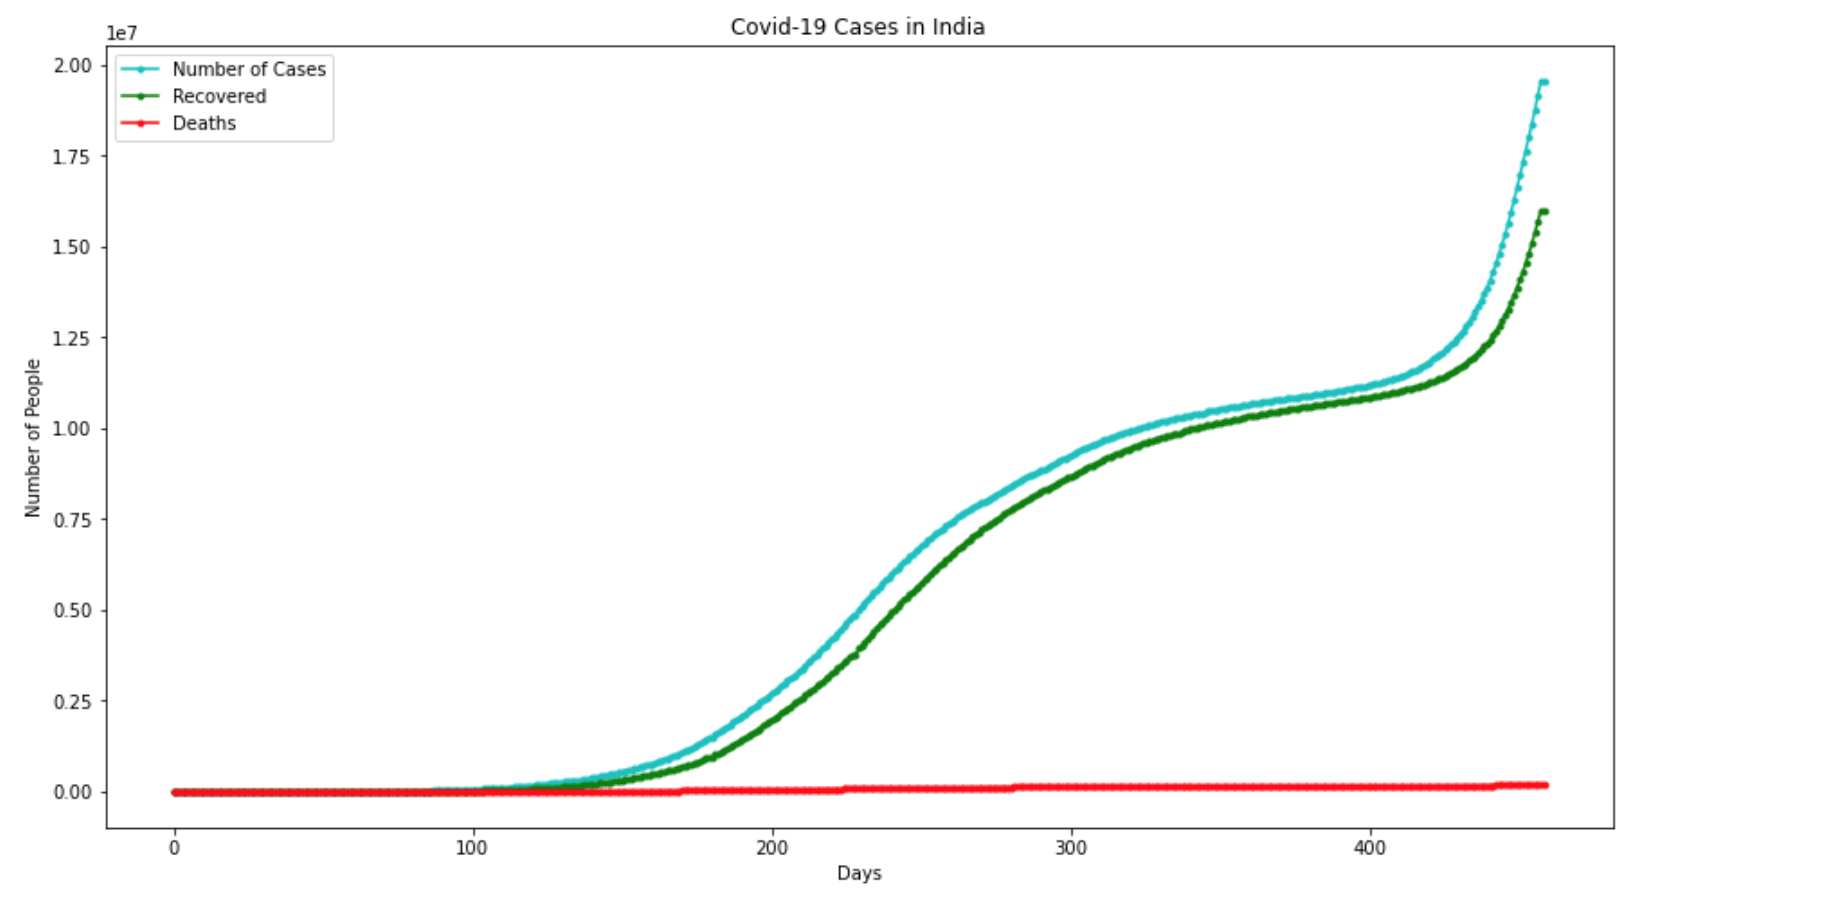 COVID-19 Analysis In India